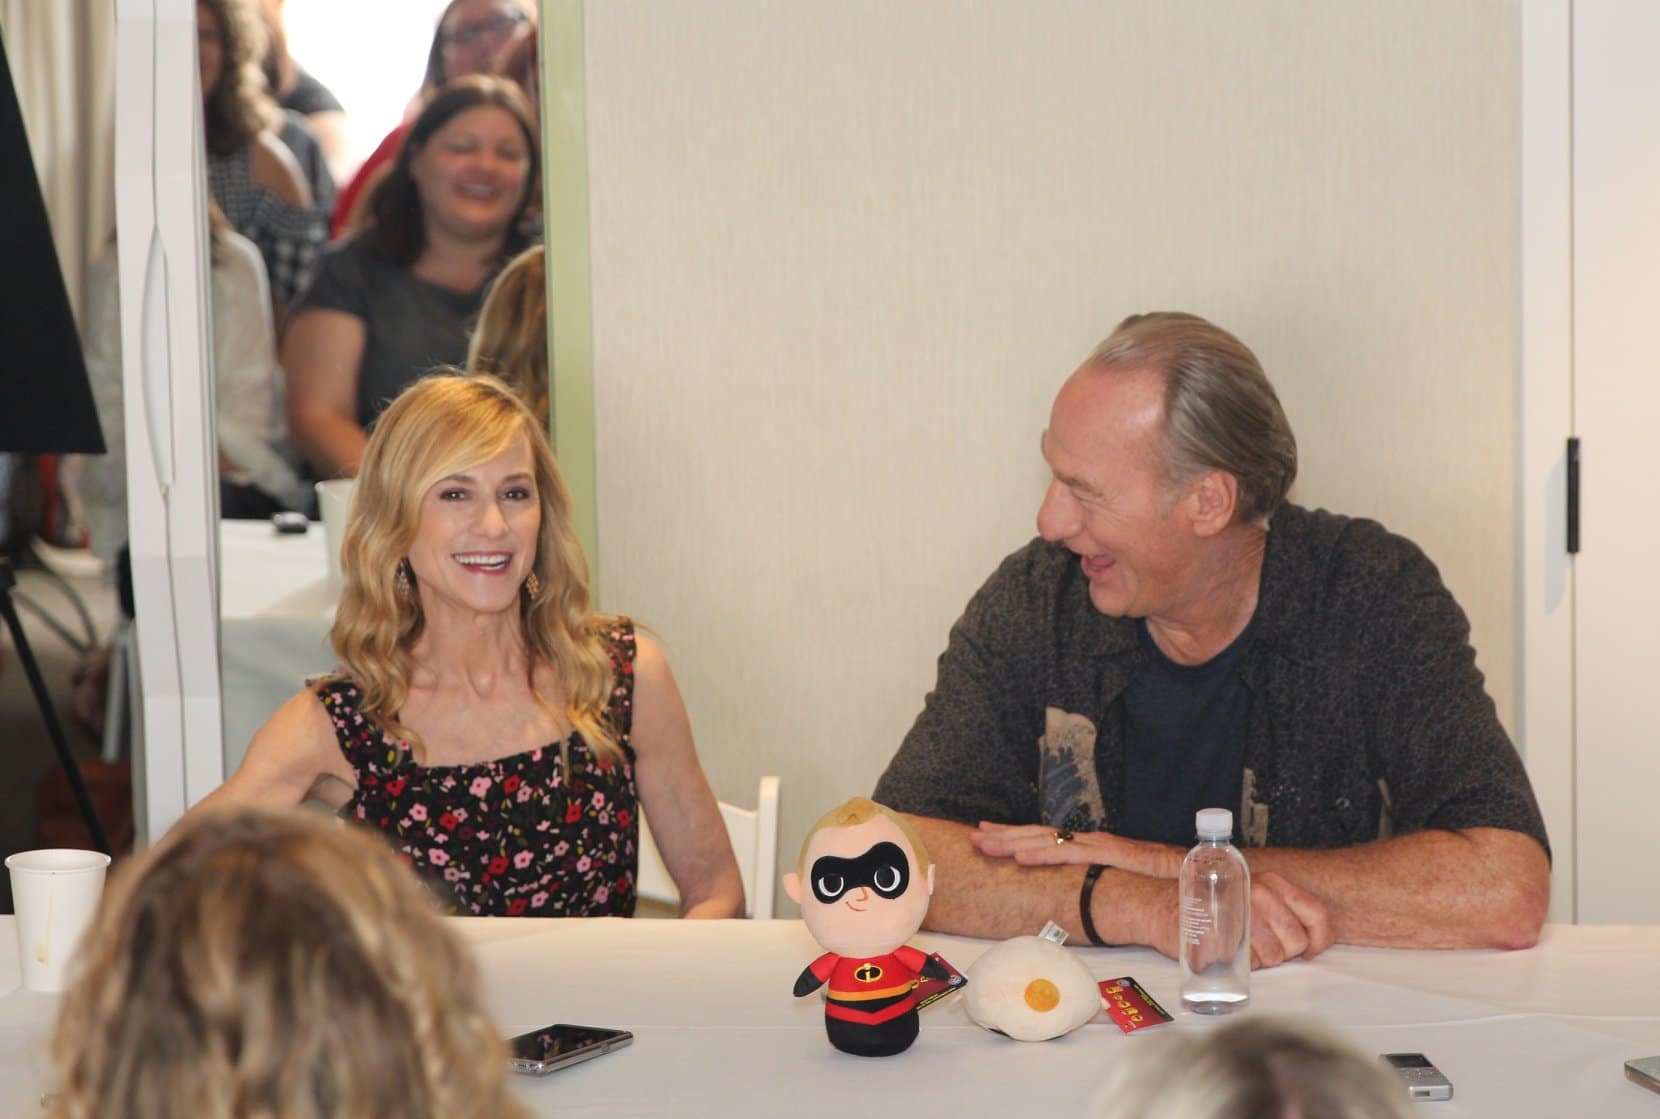 Incredibles 2 Interview with Craig T. Nelson & Holly Hunter | Mr. Incredible and Elastigirl Inside Look